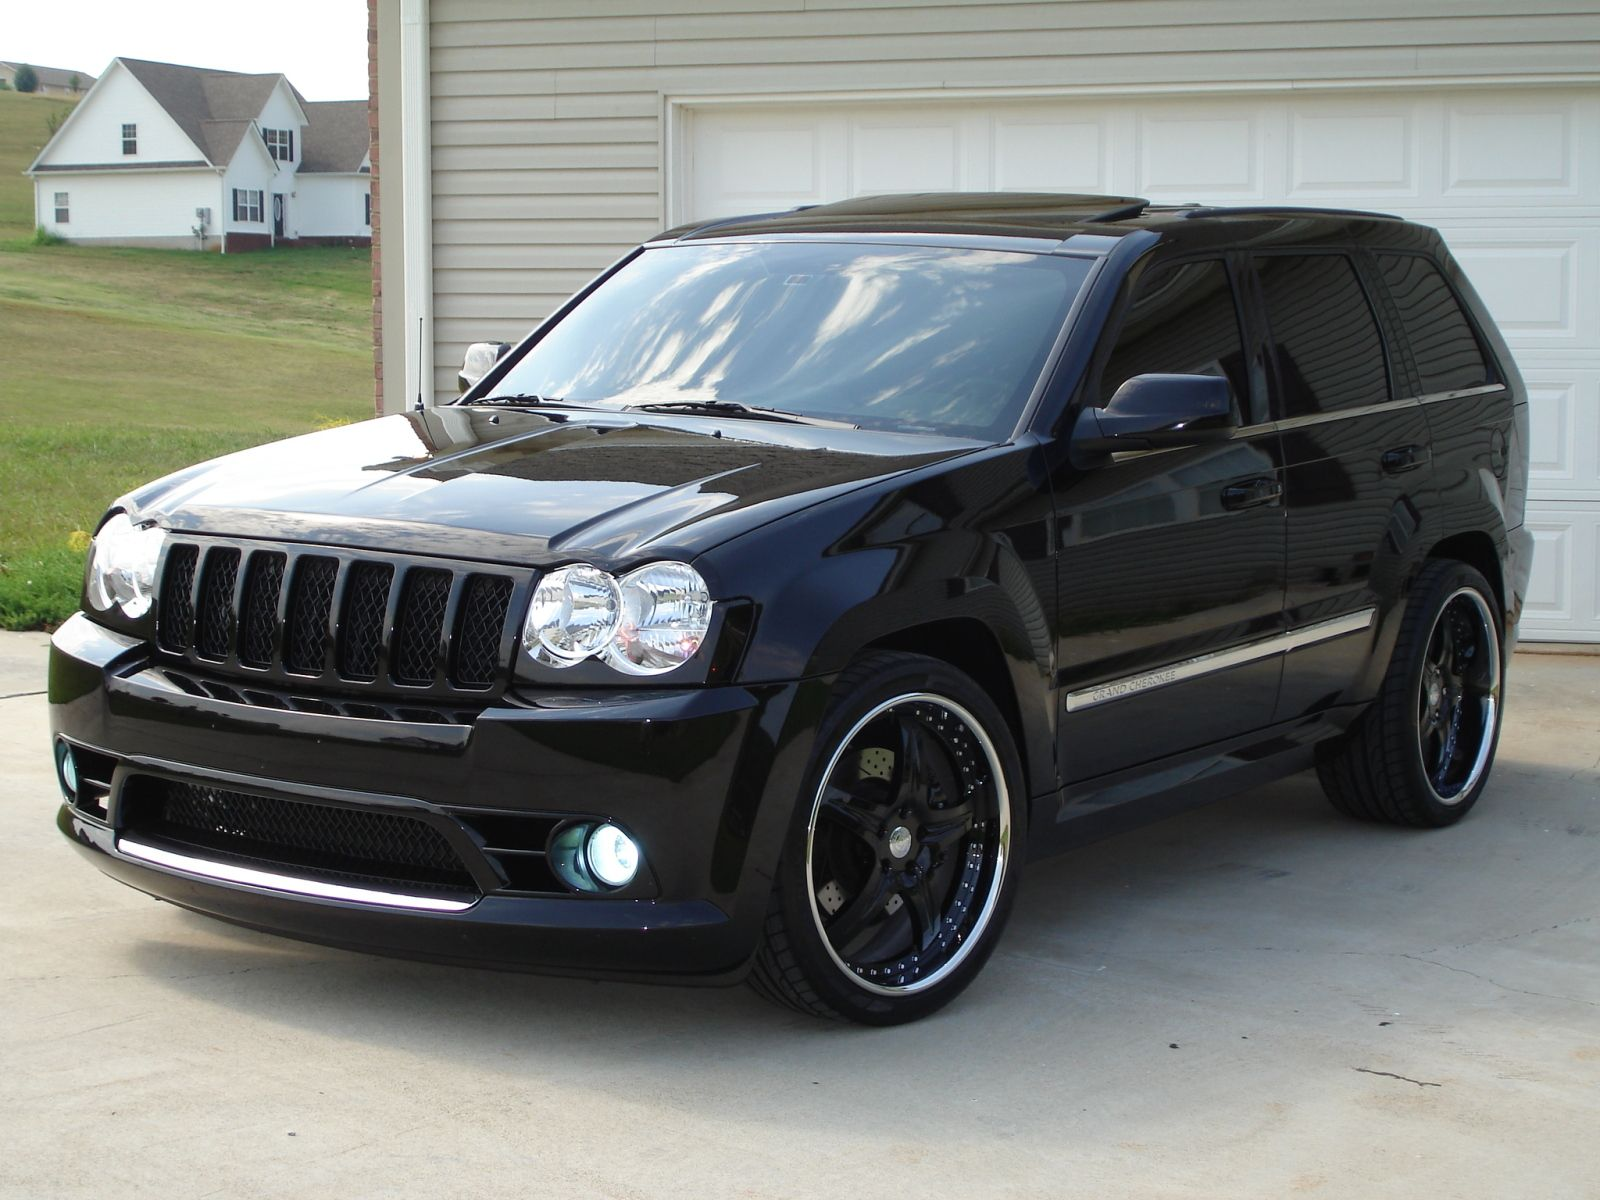 2010 Jeep Grand Cherokee Pictures Cargurus 2010 Jeep Grand Cherokee Jeep Grand Cherokee Jeep Cherokee